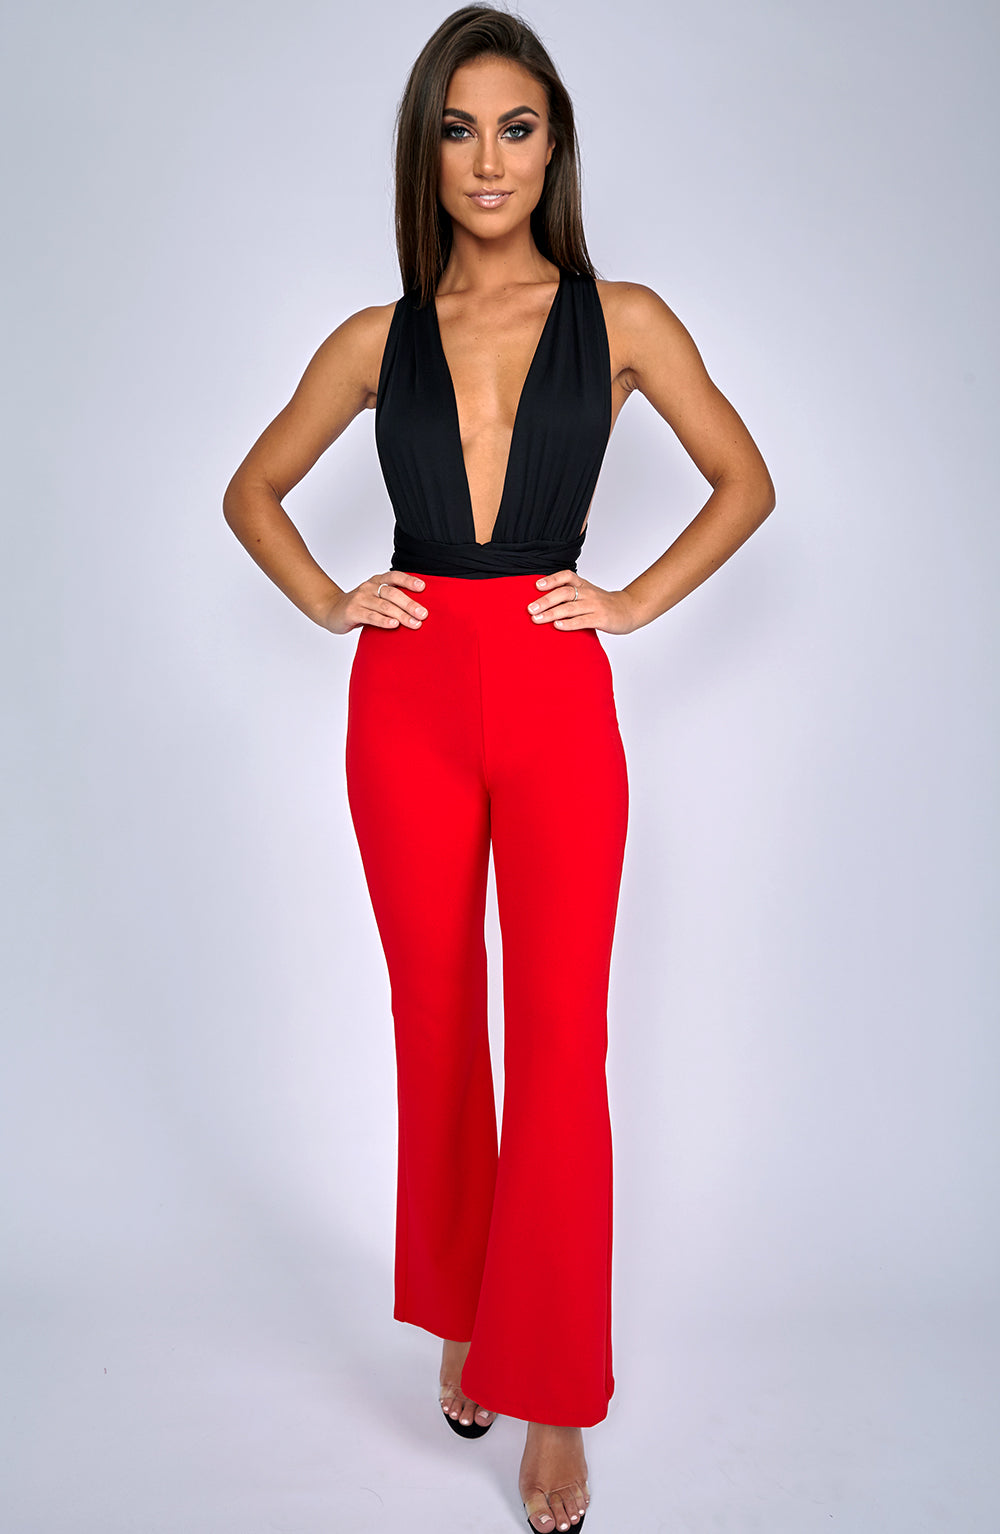 Chanel Flare Pants - Red